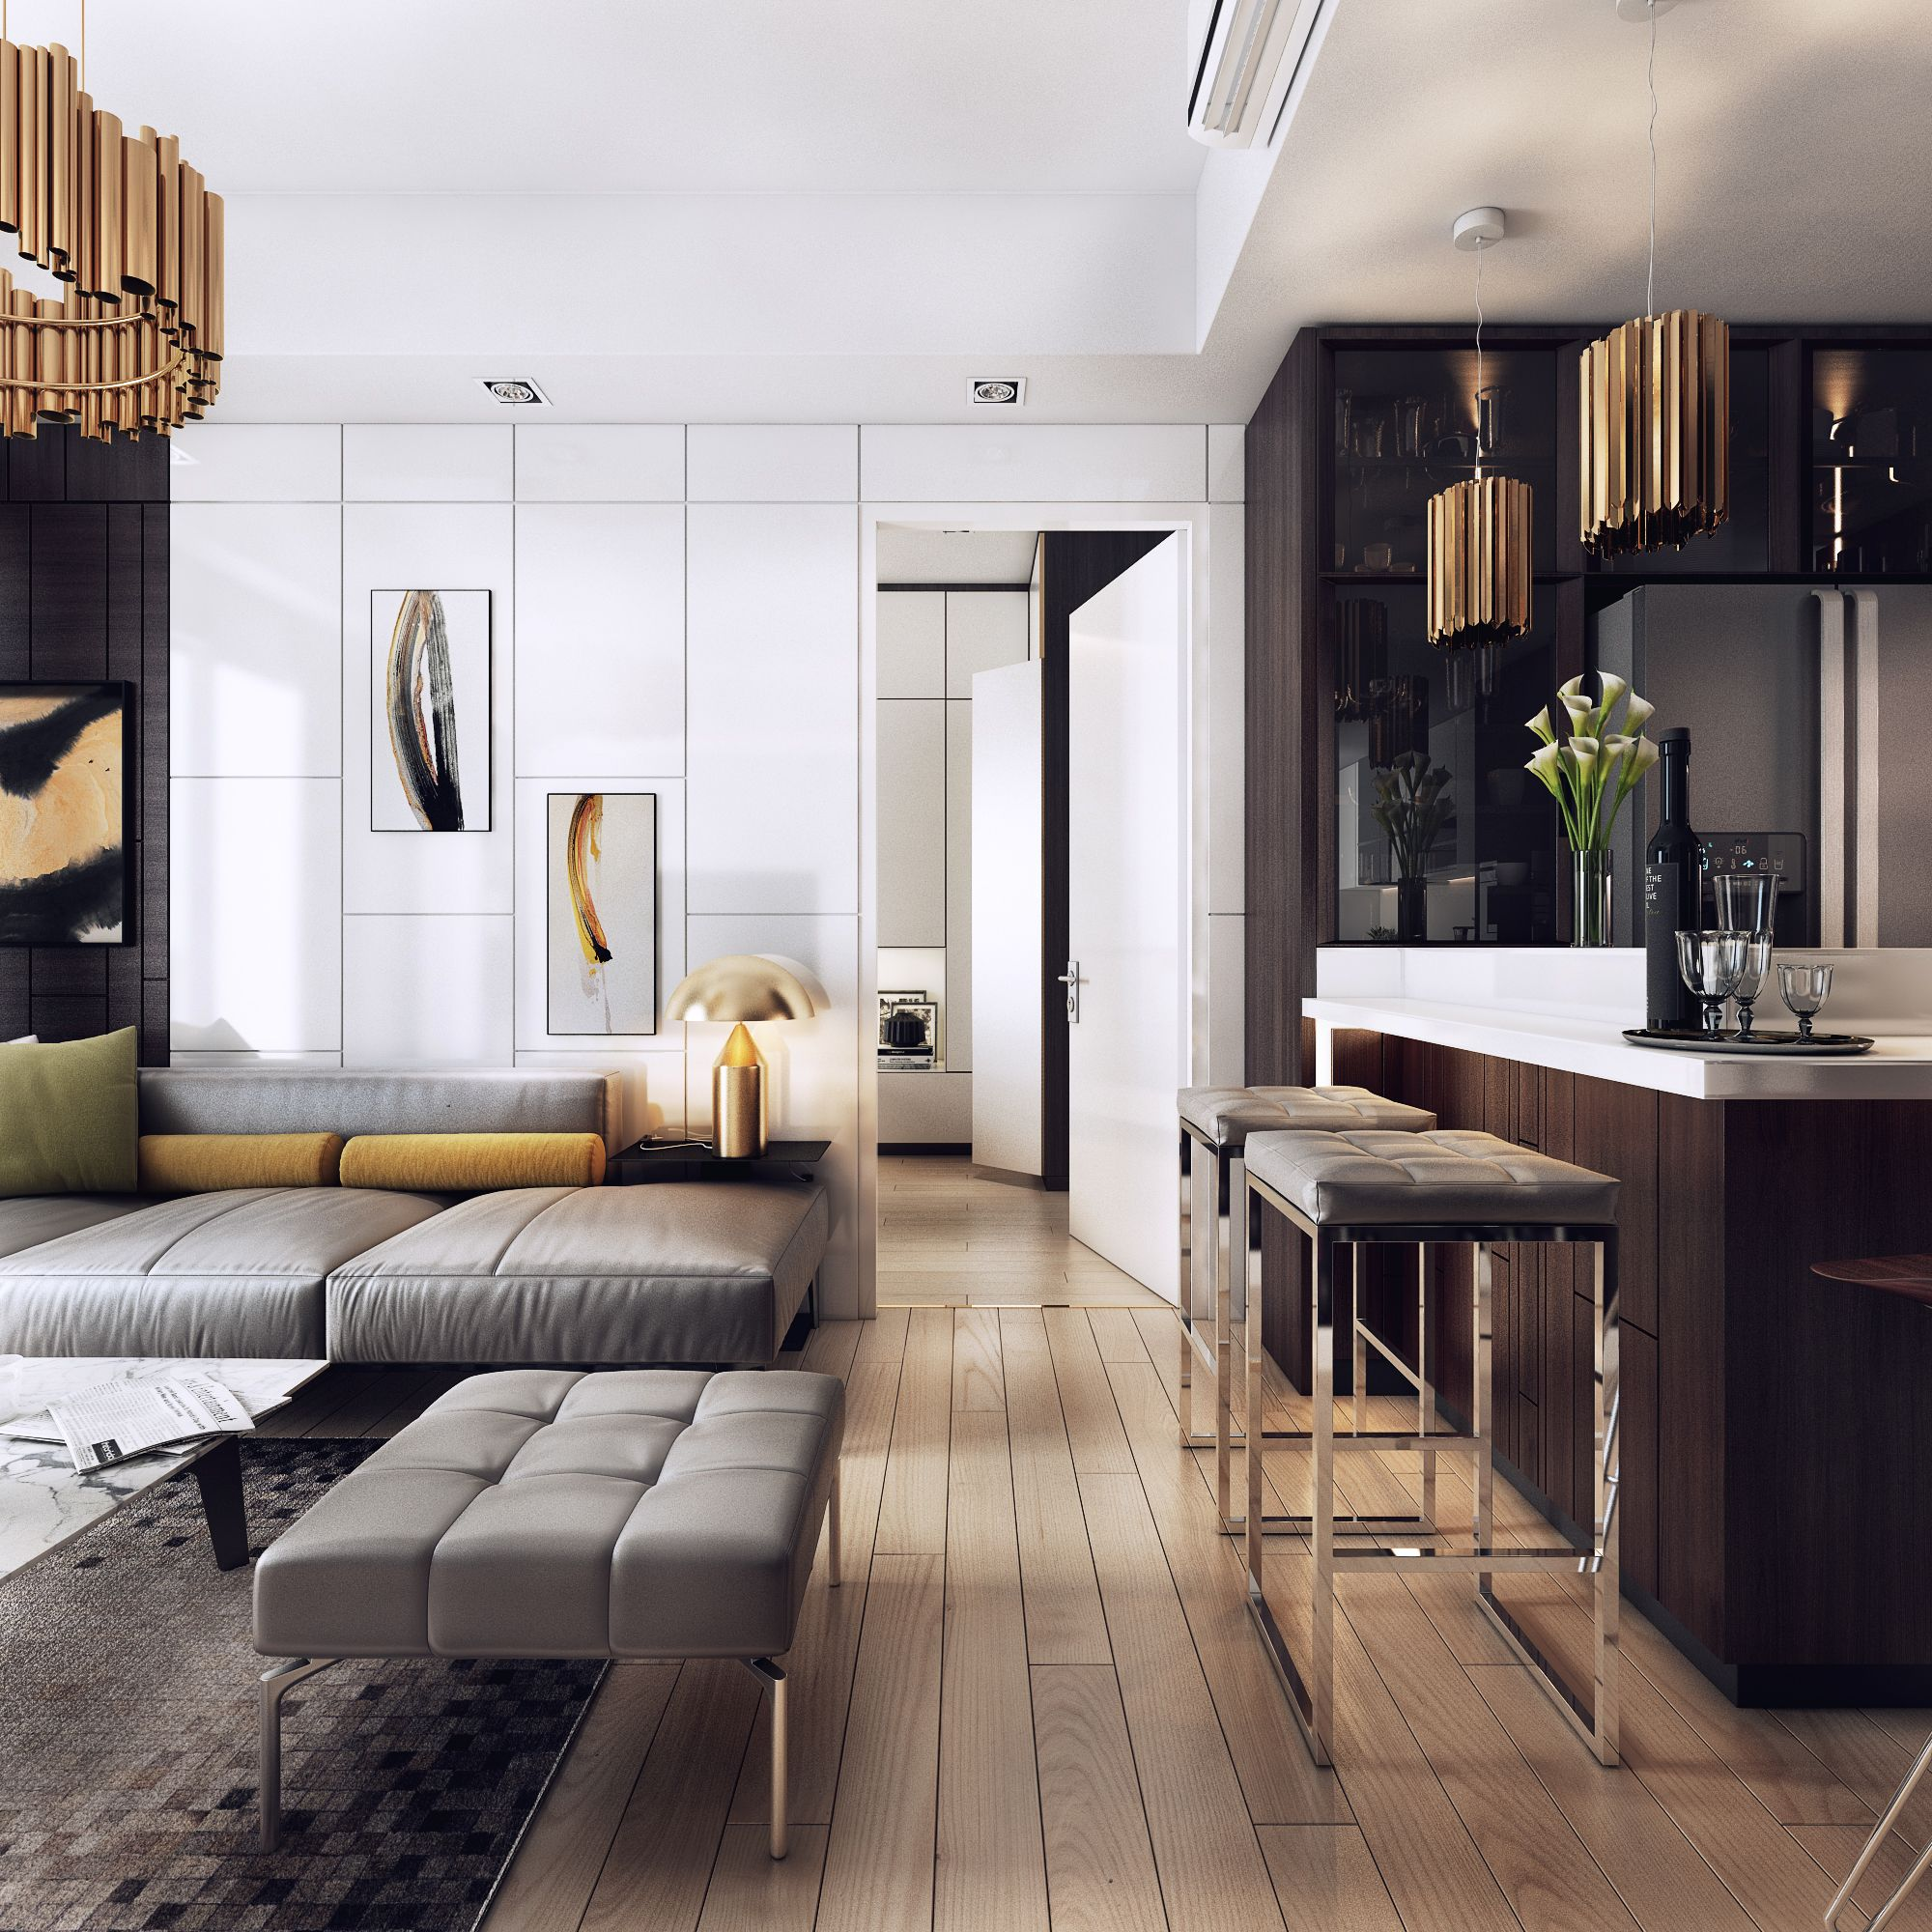 I really like the apartments of this type, with the space there is a strong… | Luxury apartments interior, Modern apartment design, Luxury apartment interior design